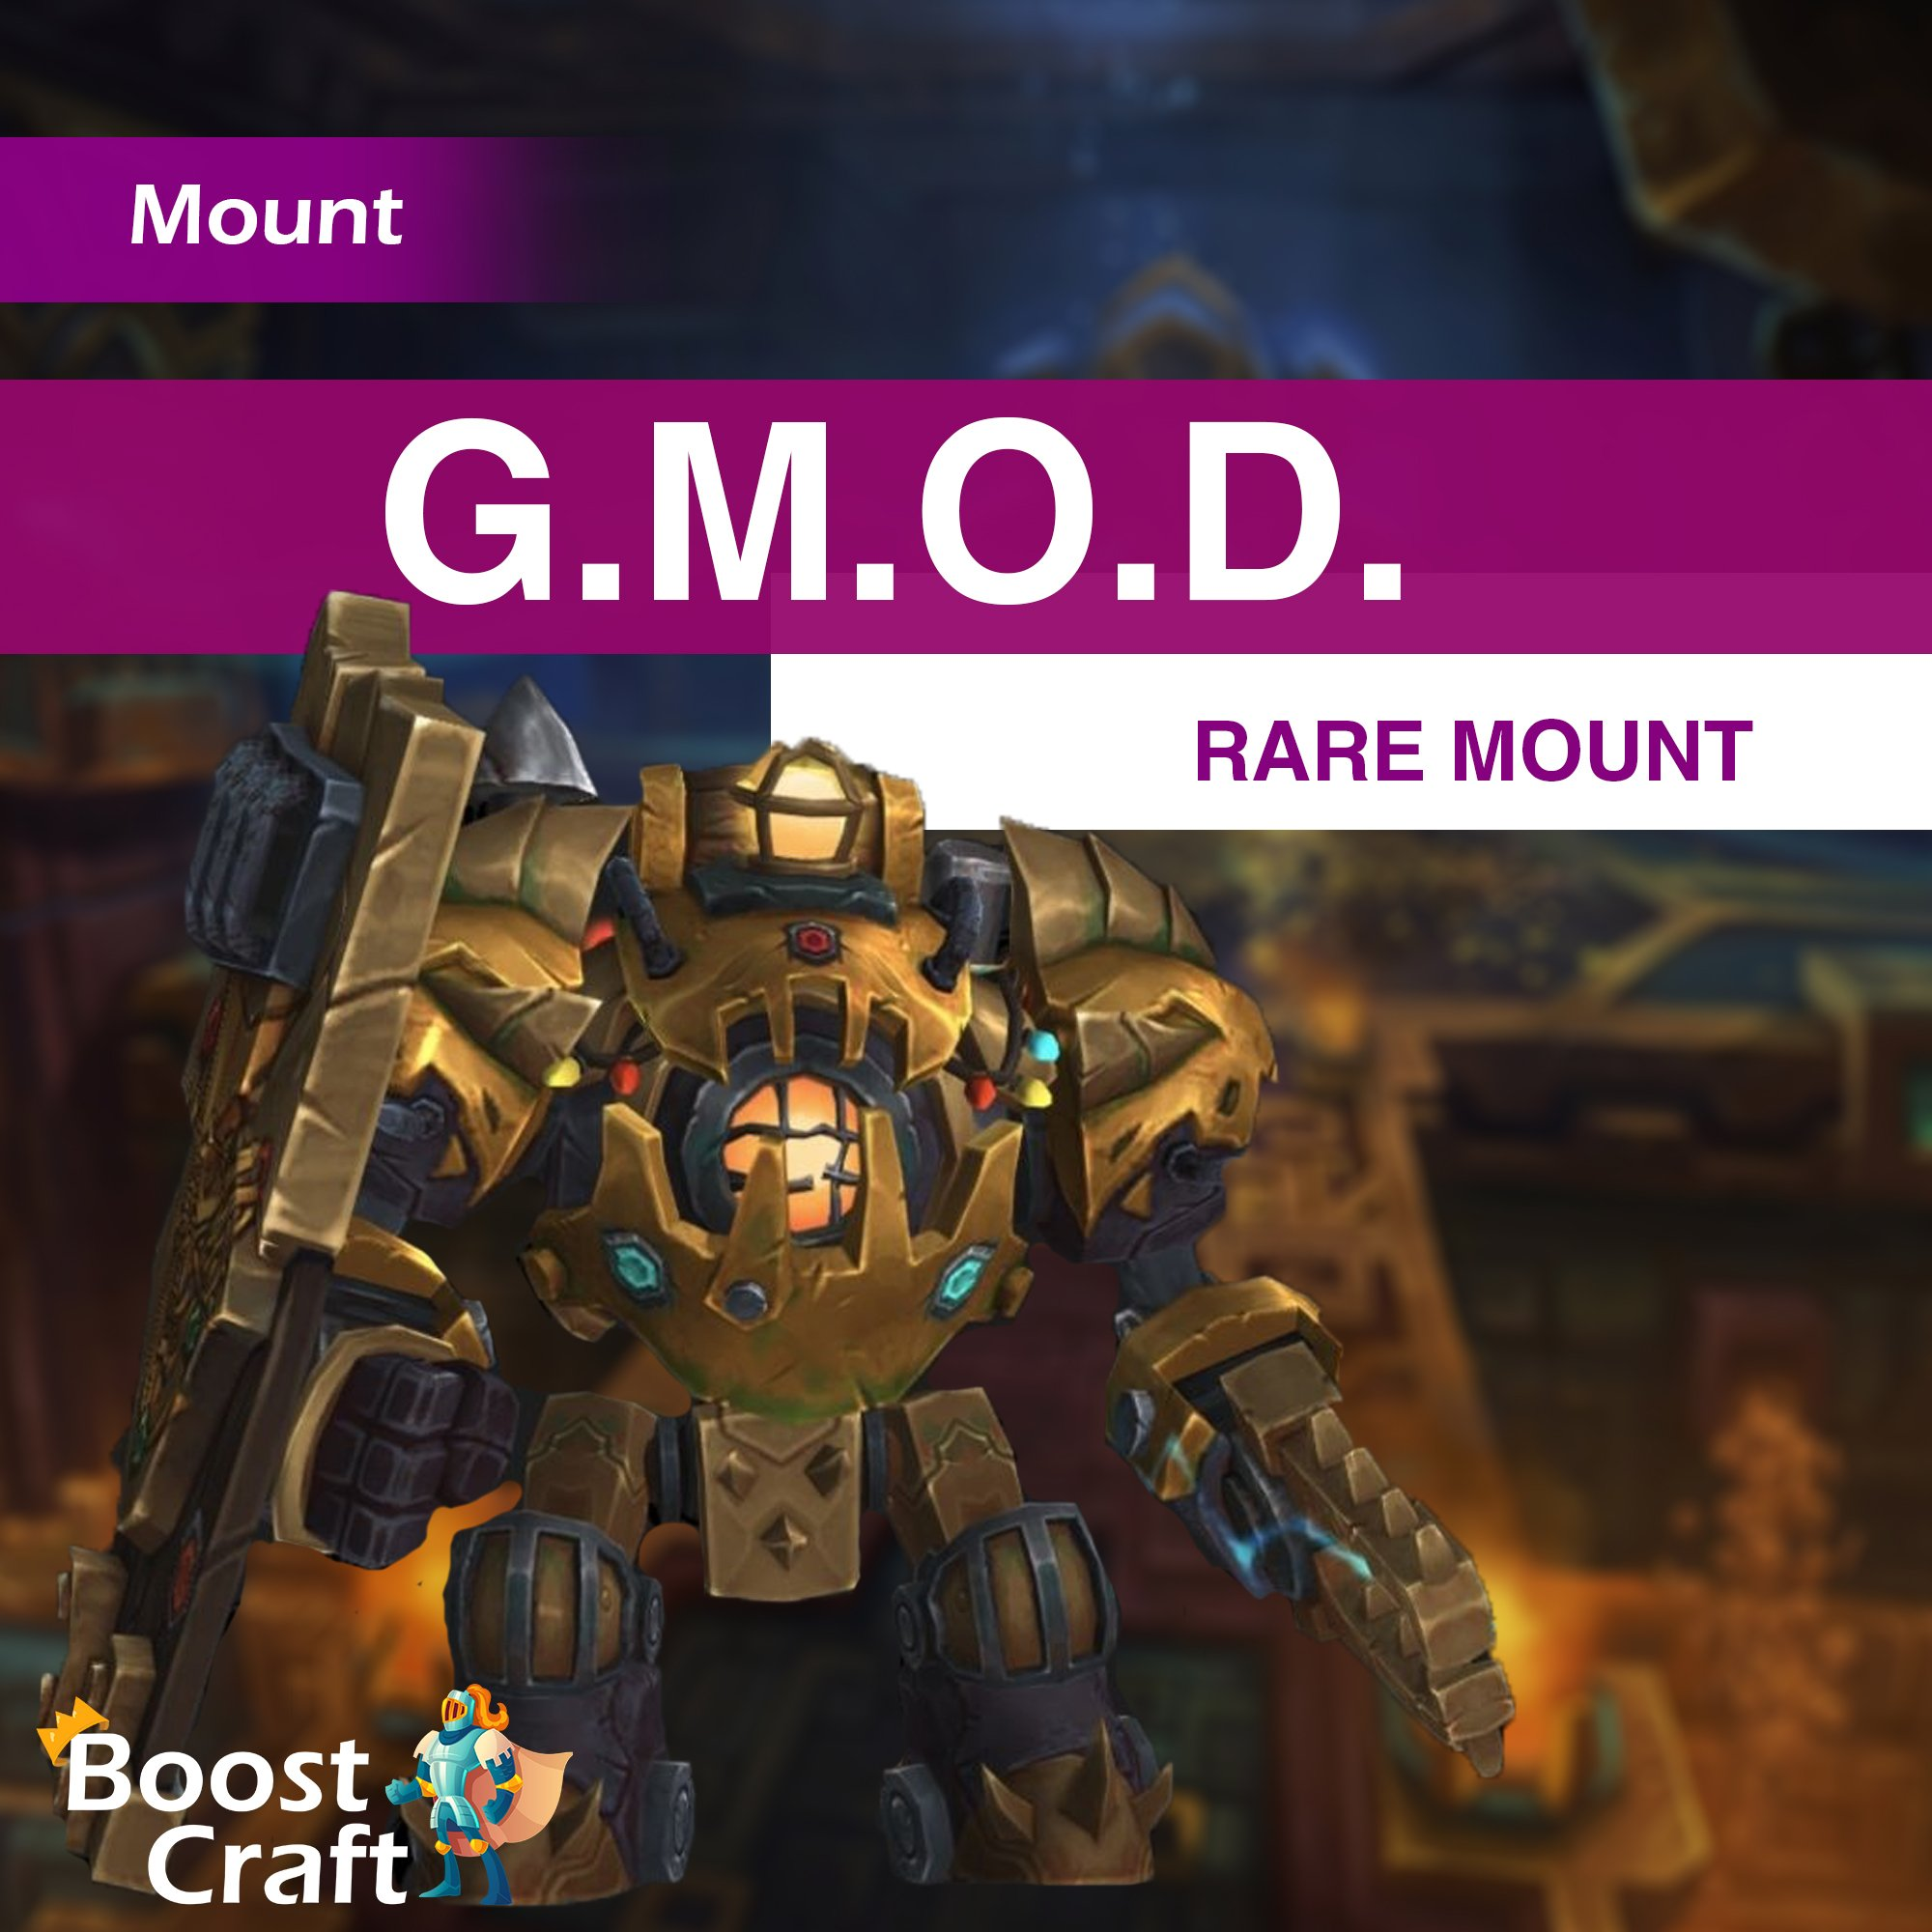 G.M.O.D. Mount farm – Boost